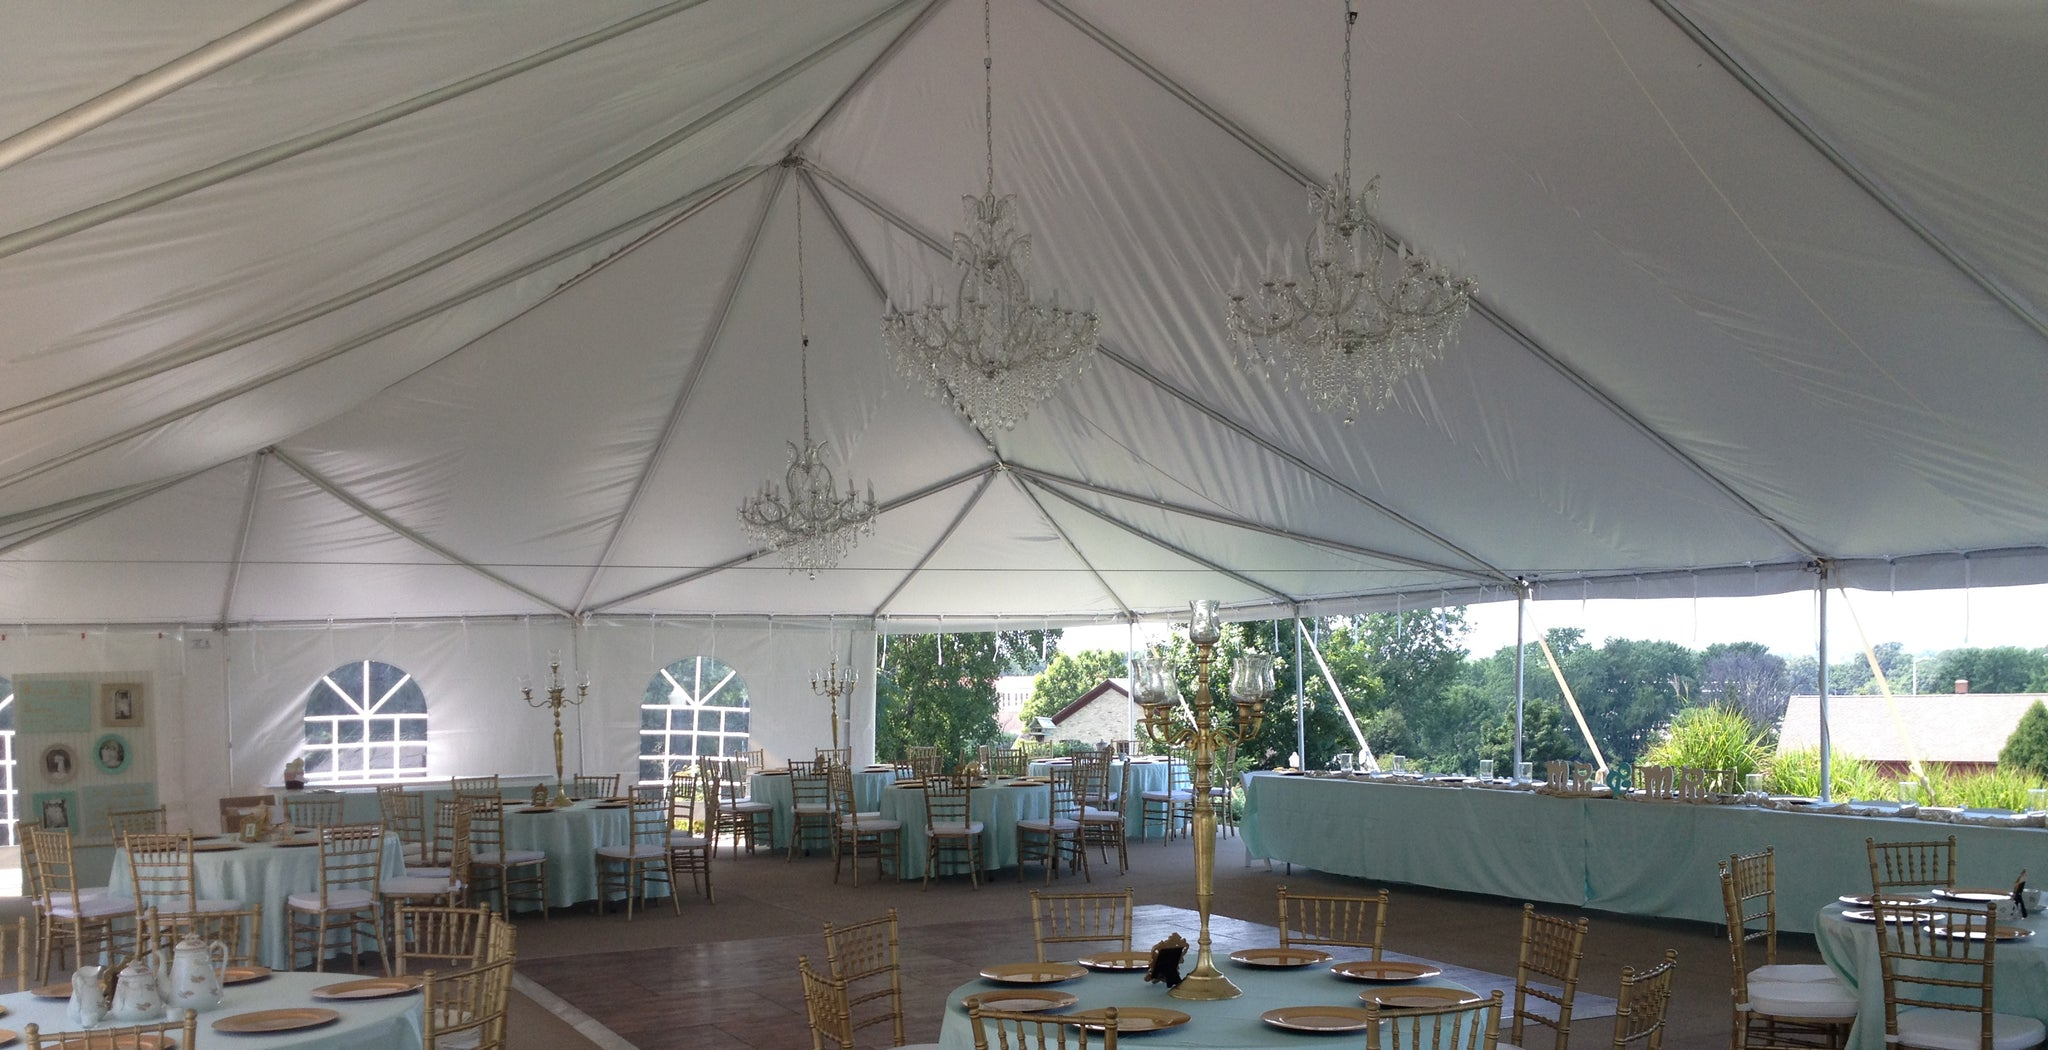 CUSTOM MADE IN AMERICA AT AFFORDABLE PRICES & American Tent u0026 Sidewall - Commercial Tents And Sidewalls For Sale